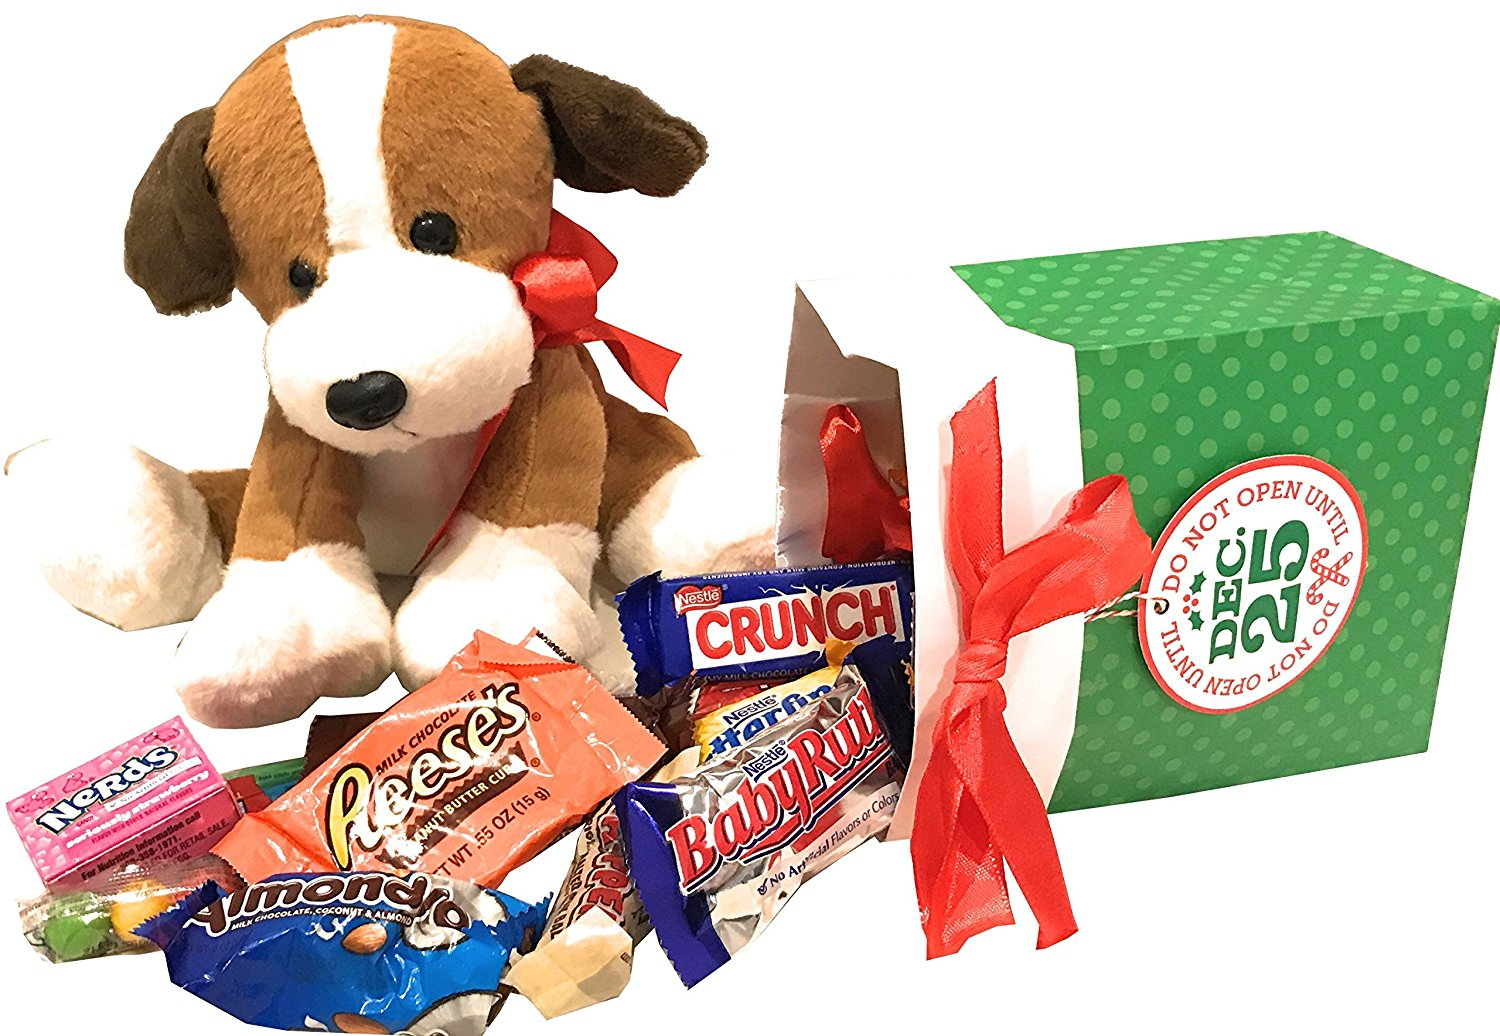 From Santa's Helper With Love! Plush Stuffed Christmas Pal with Candy - Dove - Hersheys - Nestles - Mars +More - A Special Gift for Christmas! (Brown & White Puppy & Don't Open 'Til Dec 25 Candy)